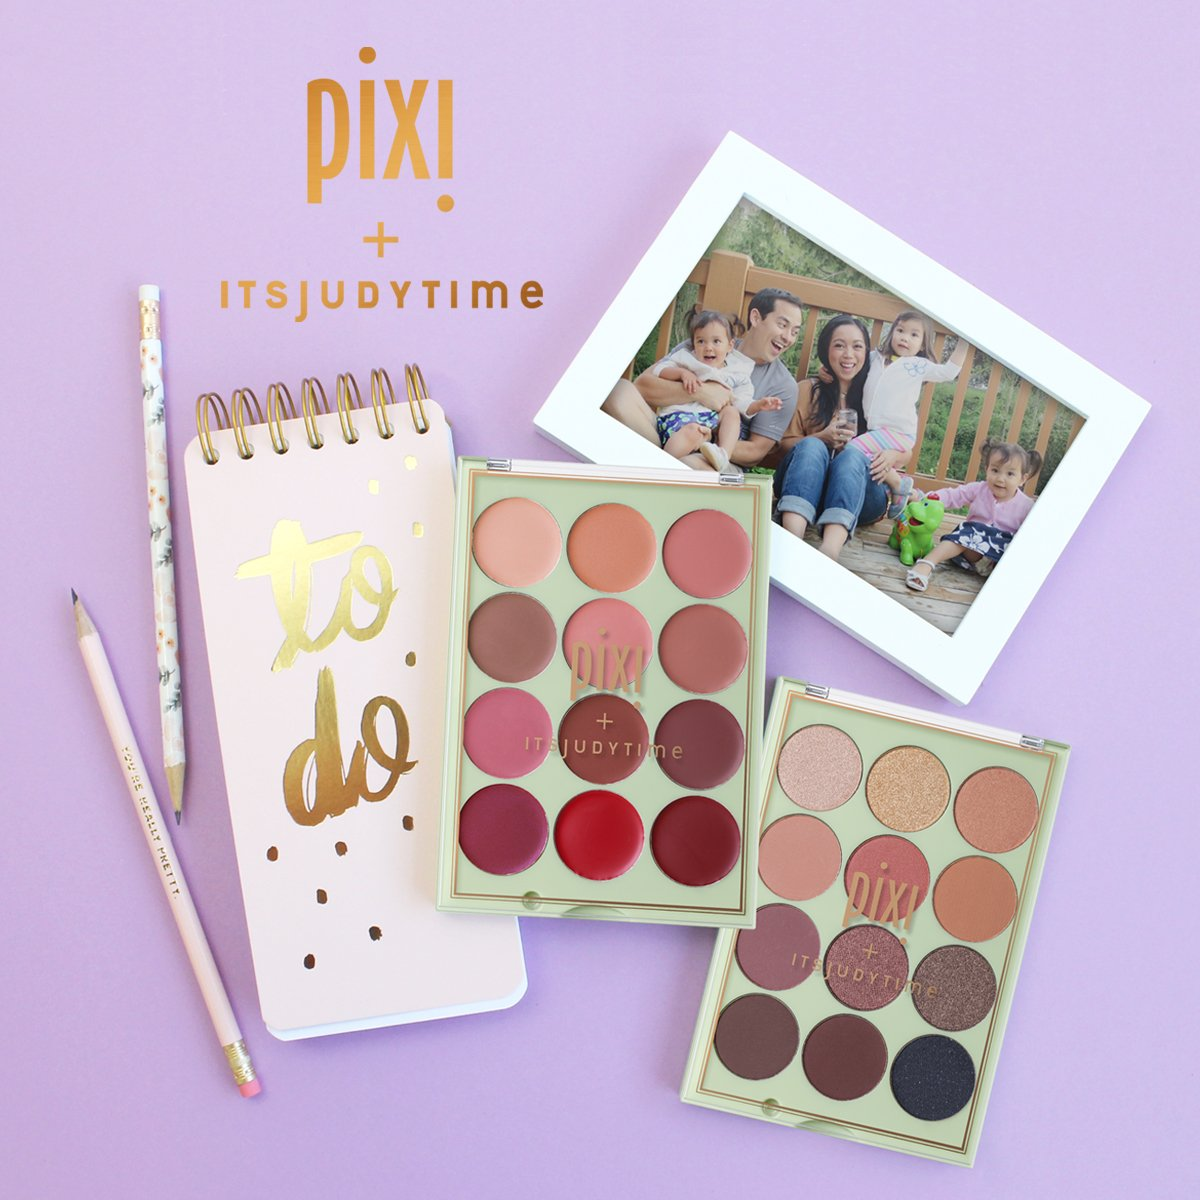 its-judy-time-pixi-palette-meet-greet-manila